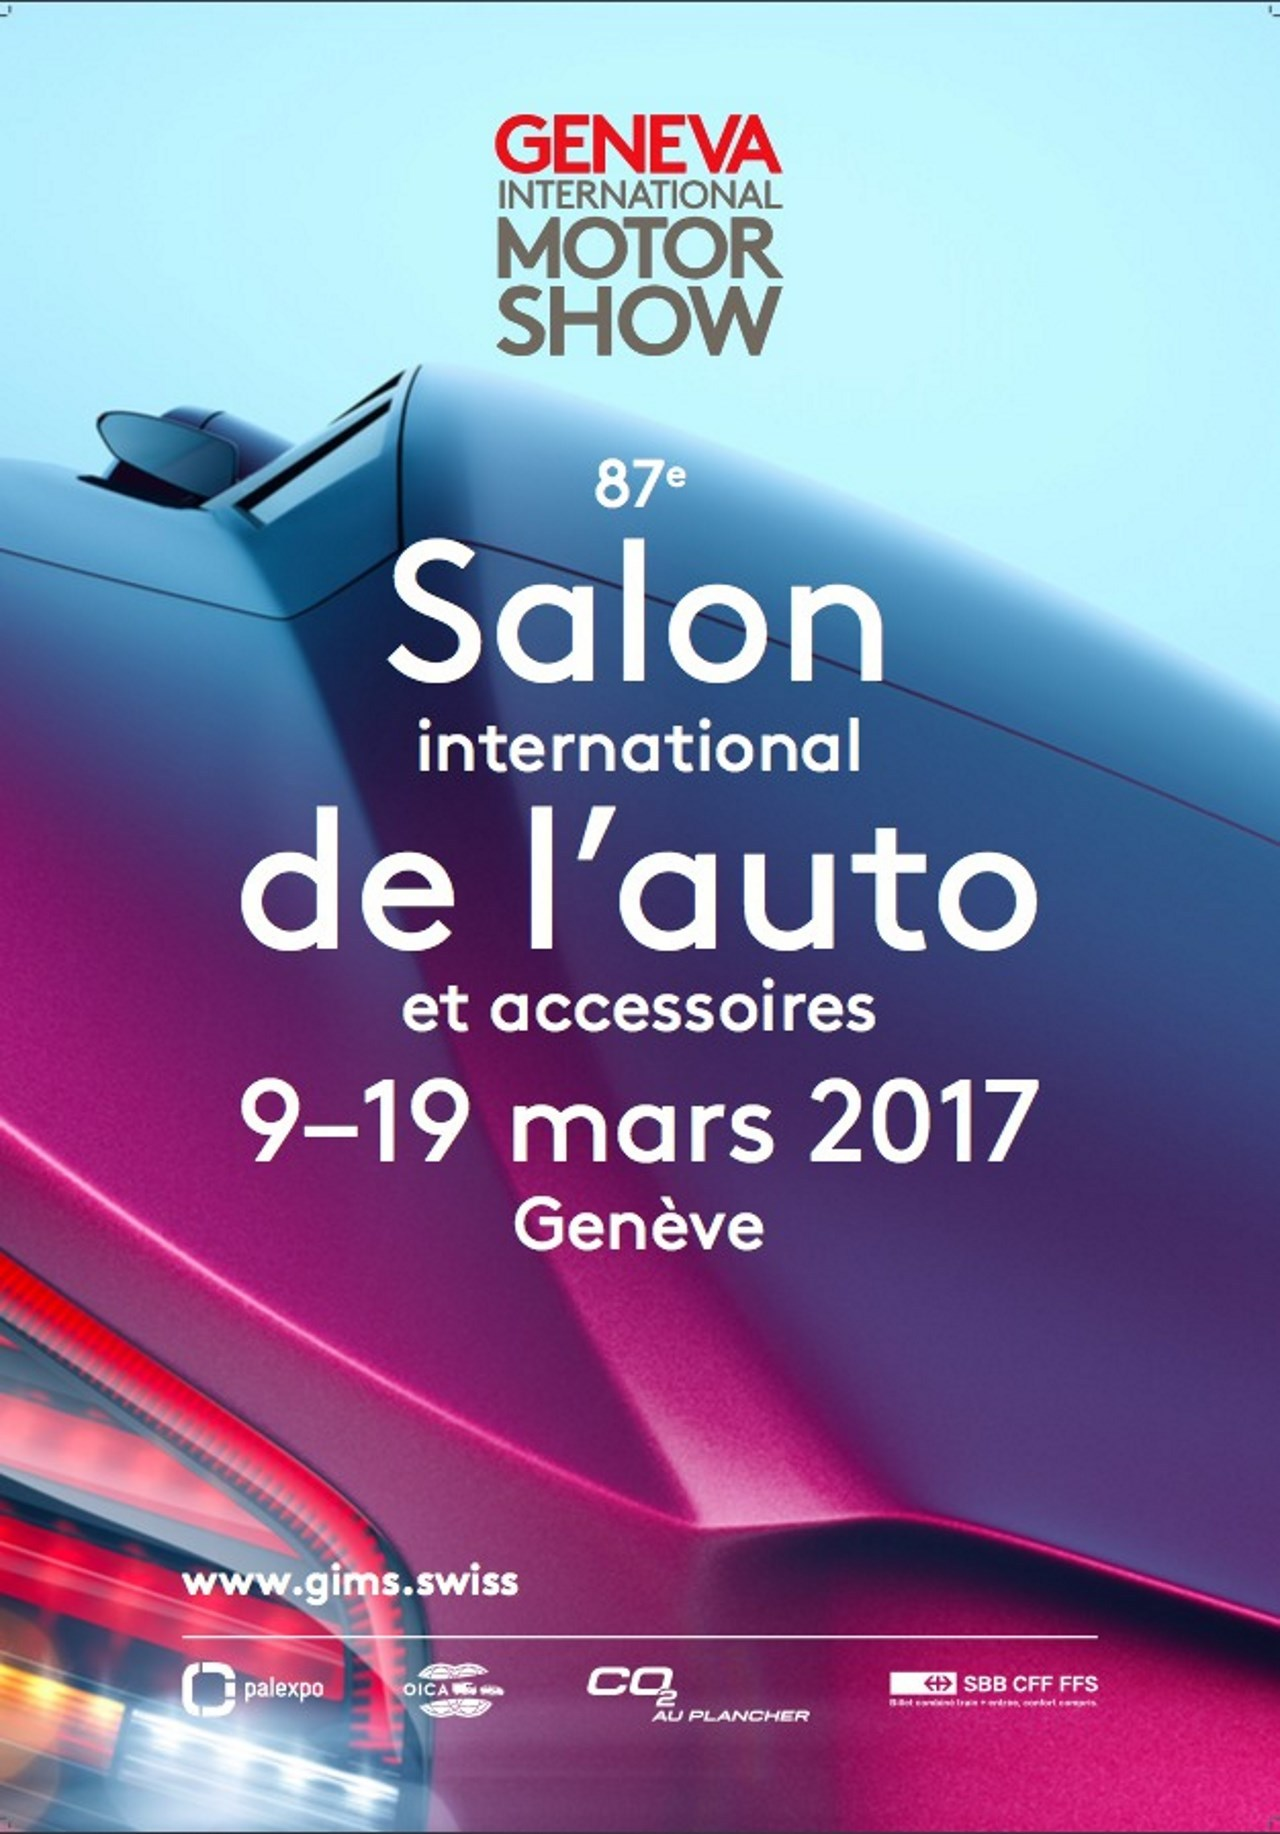 Salon de gen ve 2017 l 39 affiche d voil e photo 2 l 39 argus - Salon de l auto geneve ...